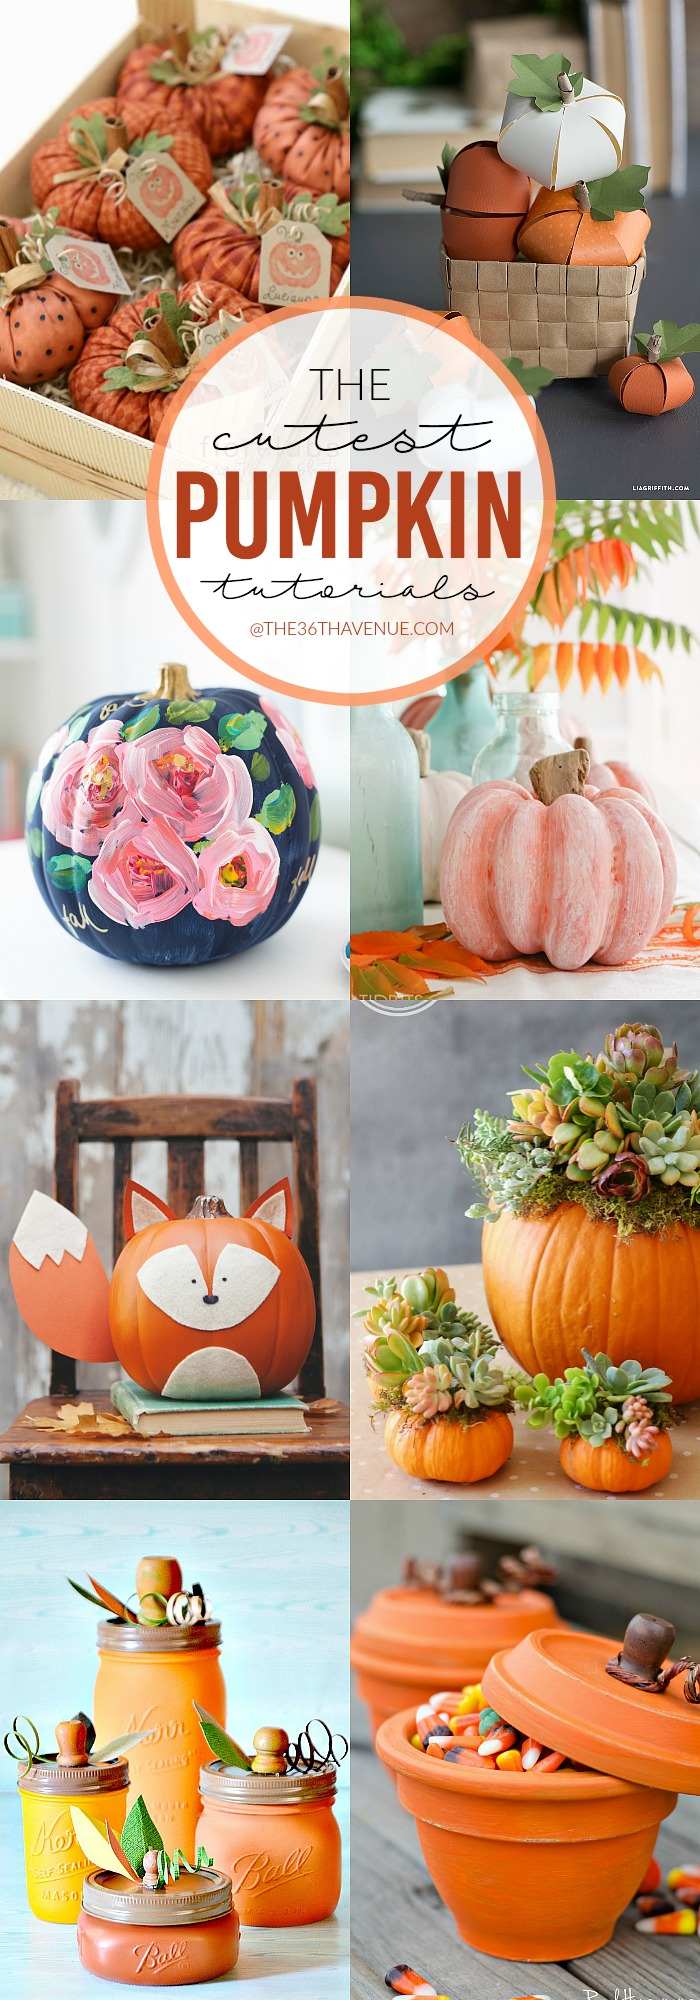 diy-pumpkin-tutorials-at-the36thavenue-com